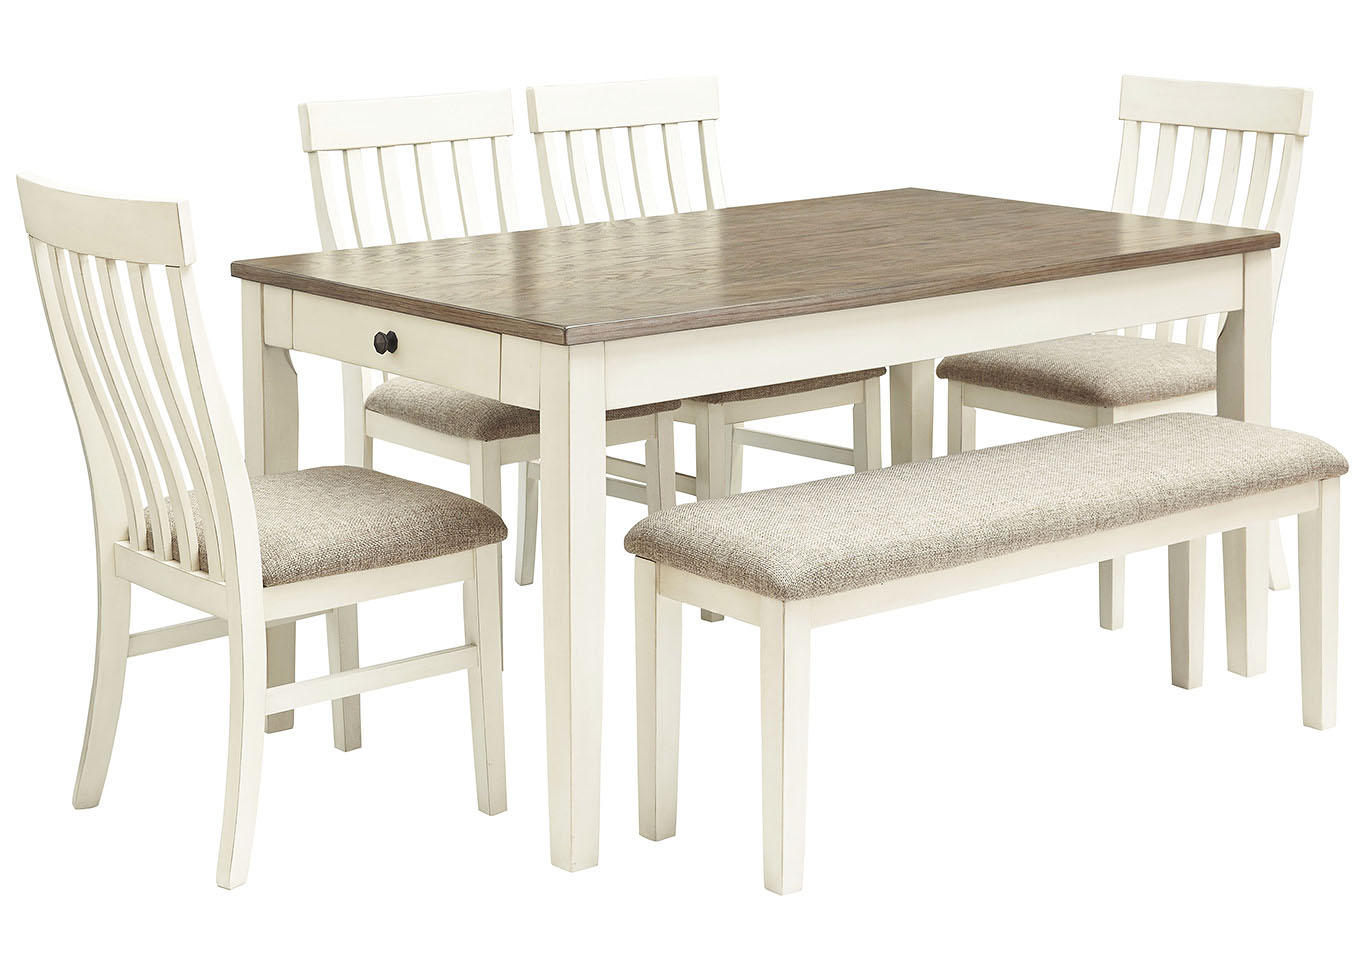 Prime Country House Furniture Bardilyn Dining Table W 4 Side Gamerscity Chair Design For Home Gamerscityorg